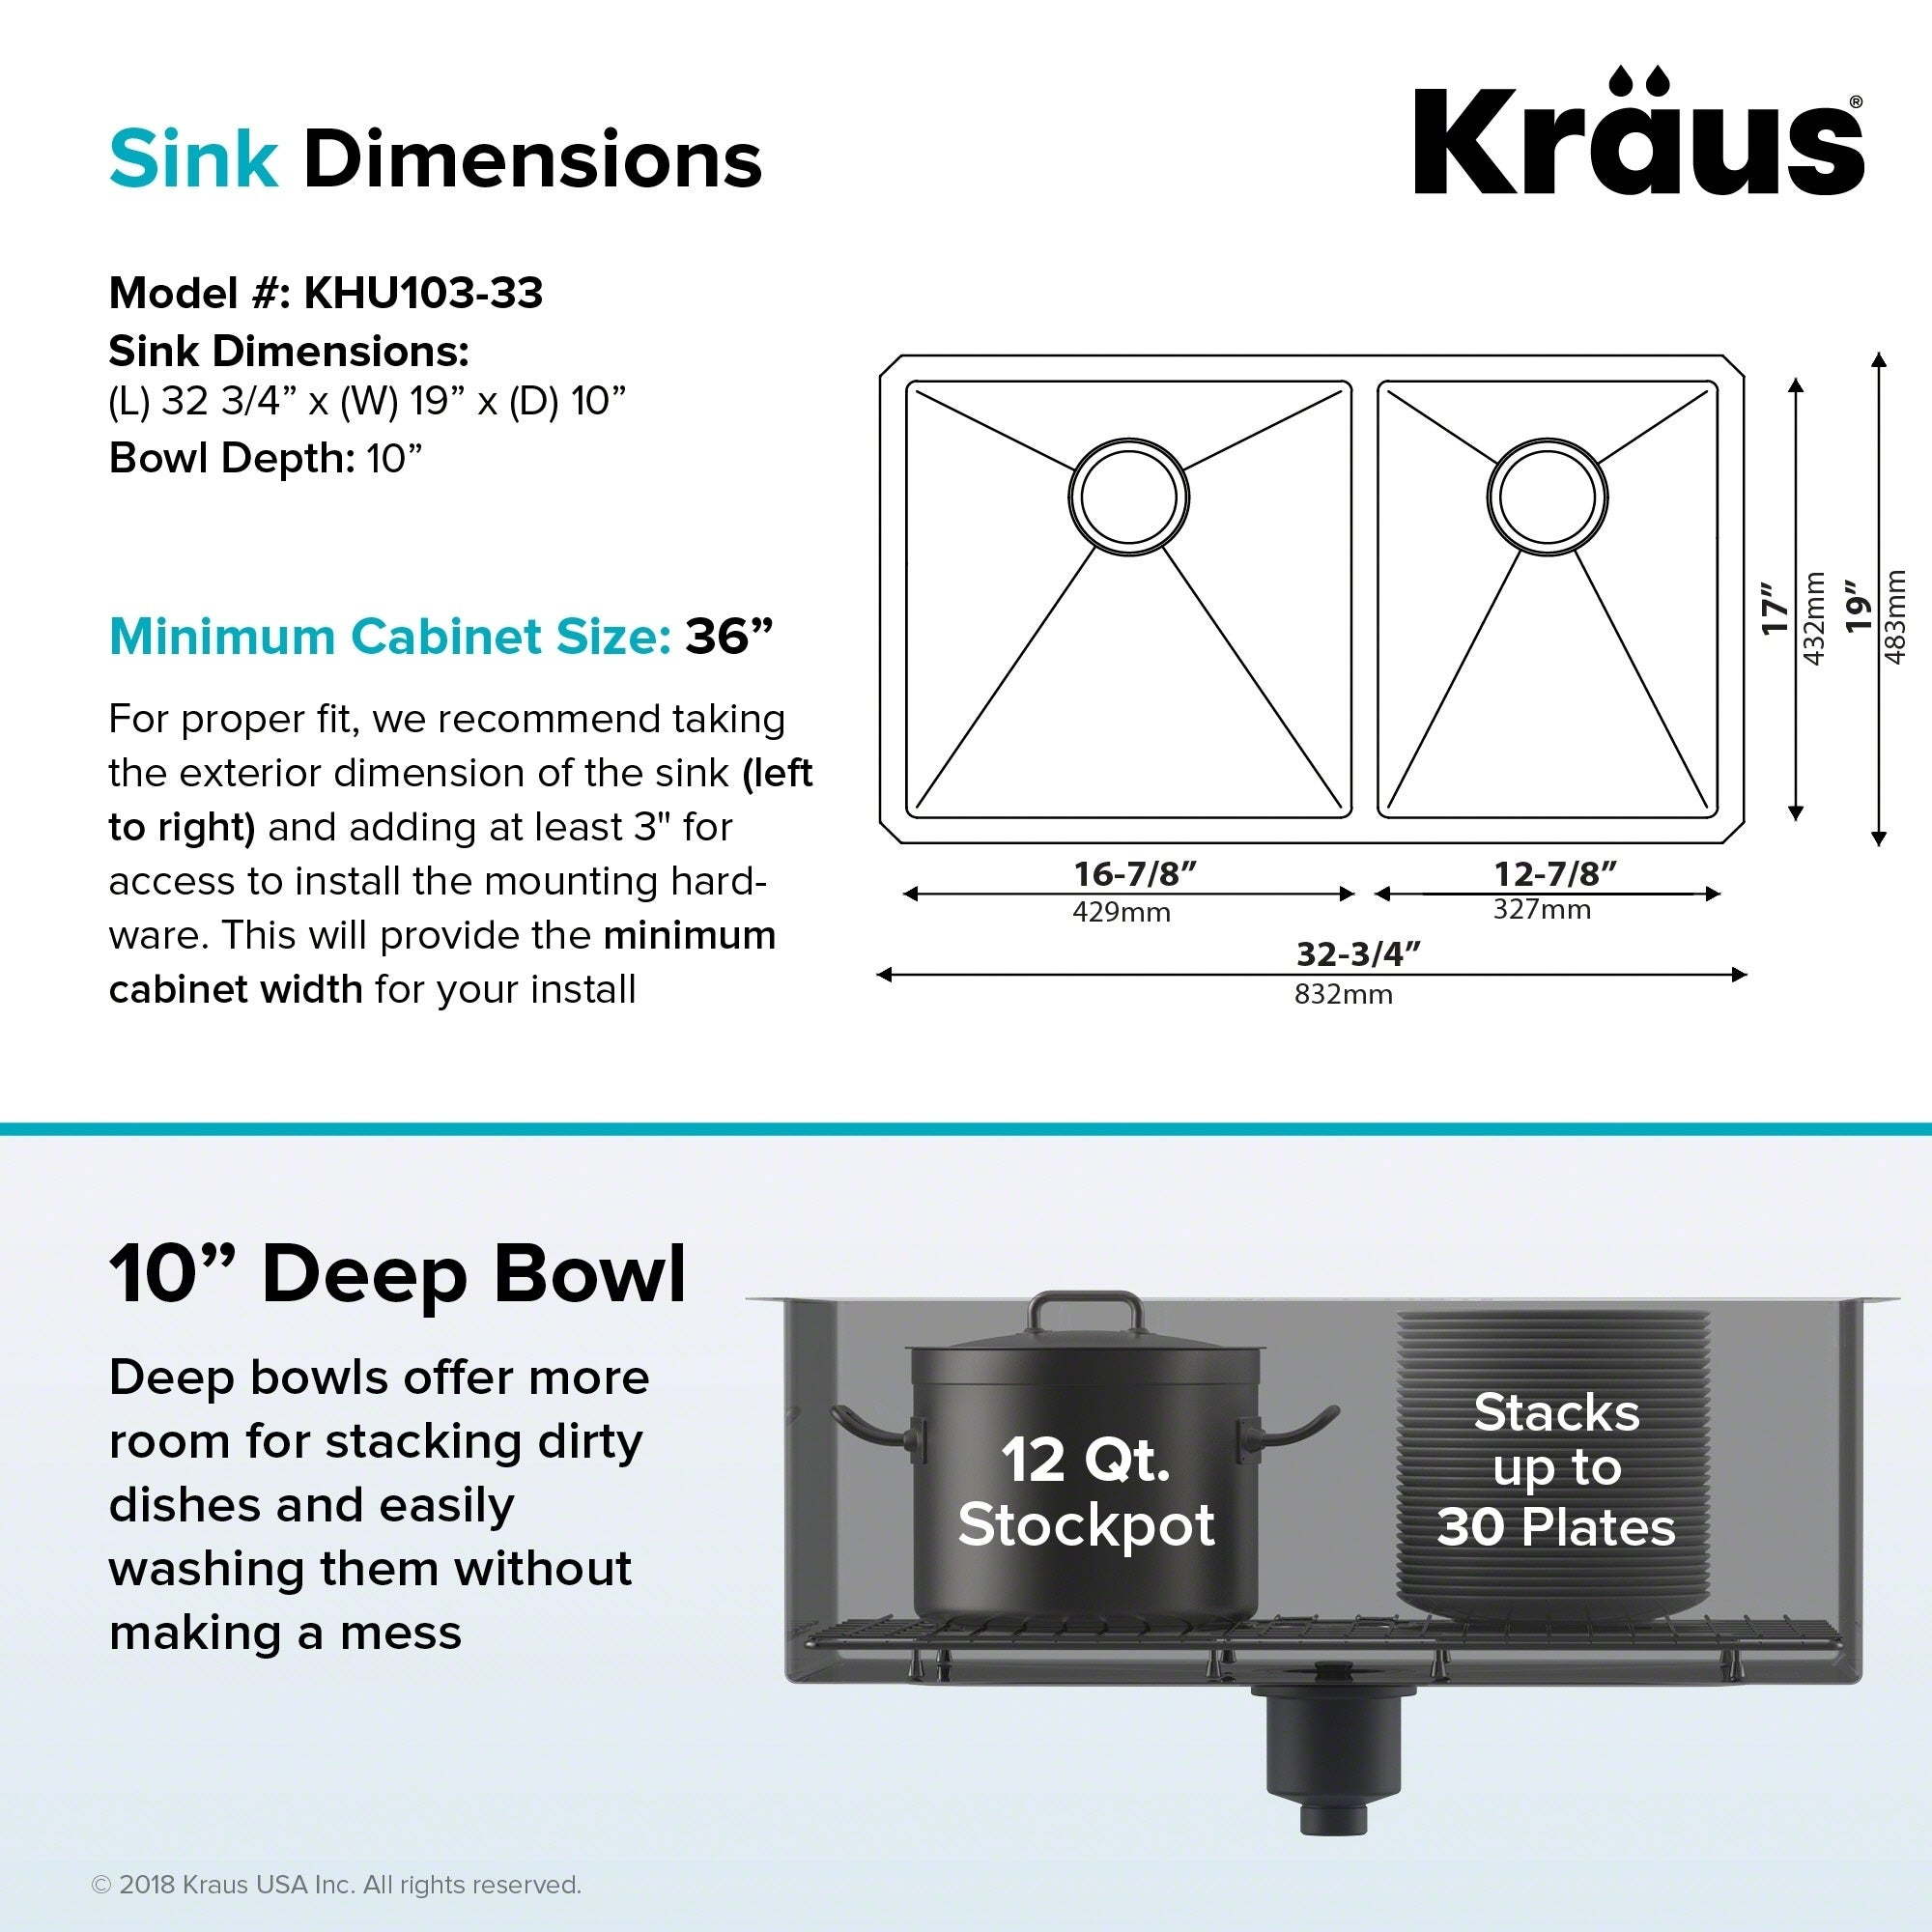 Double Kitchen Sink Dimensions Kraus standart pro 33 inch 16 gauge undermount 6040 double bowl kraus standart pro 33 inch 16 gauge undermount 6040 double bowl stainless steel kitchen sink free shipping today overstock 11477729 workwithnaturefo